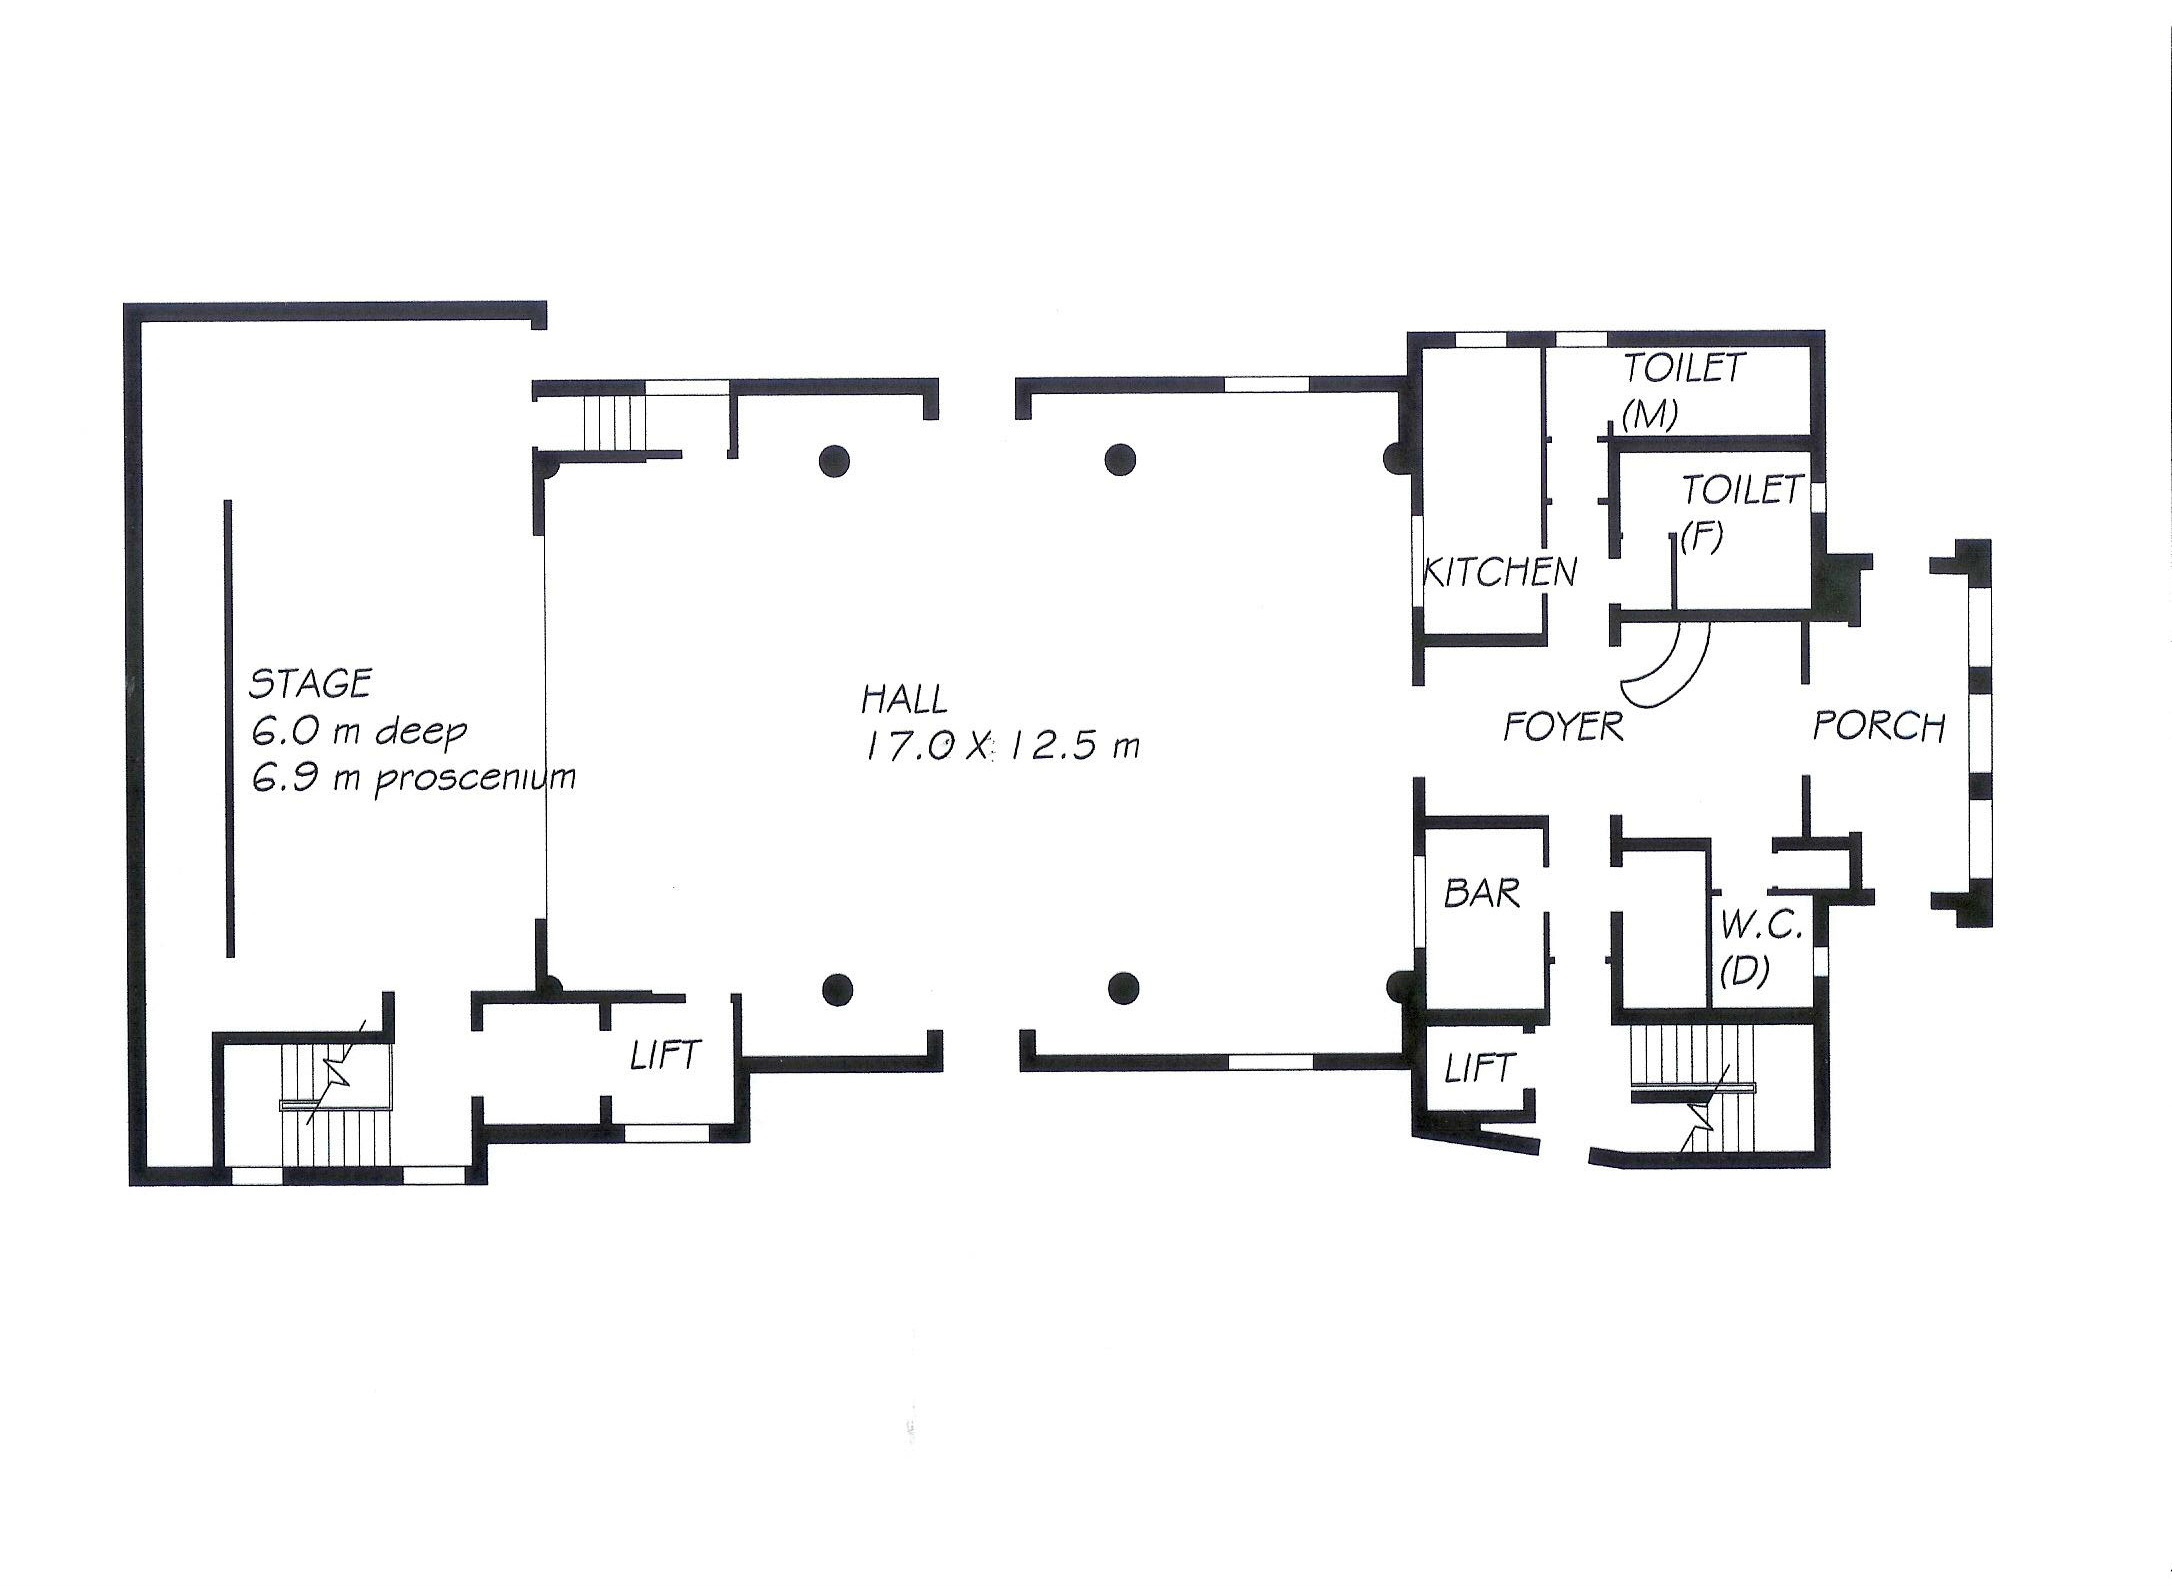 Small Bathroom Floor Plans together with Downing Street Floor Plans London 10 together with Diagram Pipes Under Sink 646142 together with Roof Framing in addition Pseudorooms. on find house plans uk